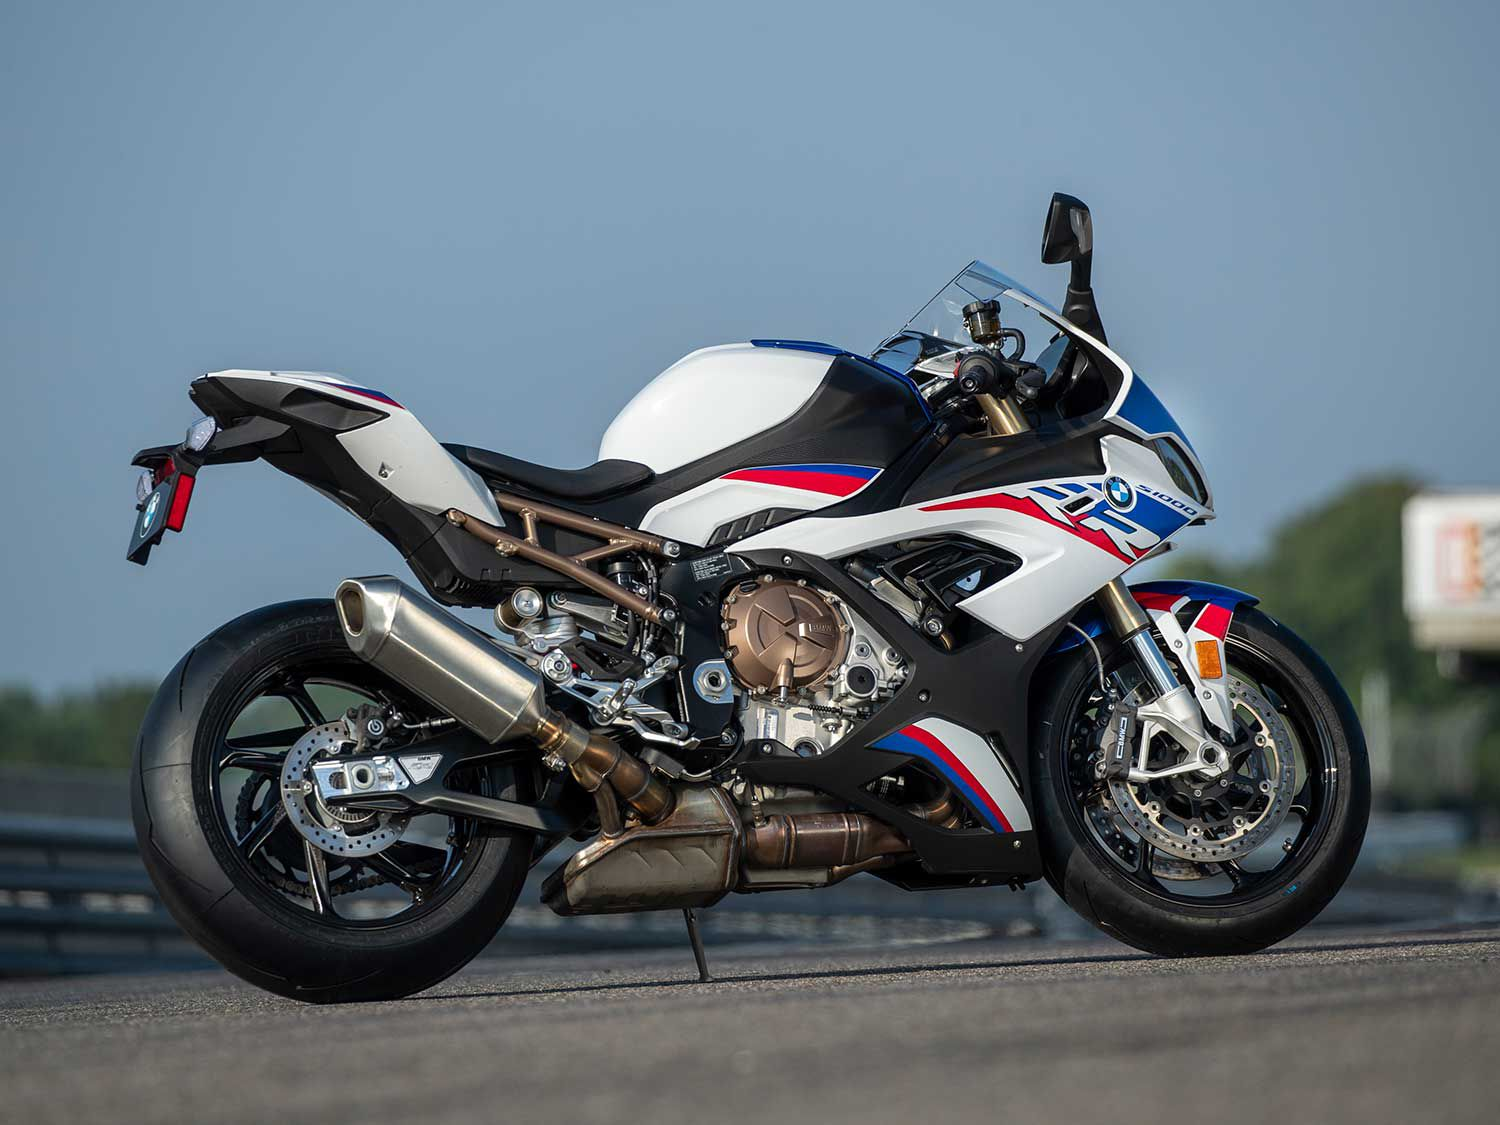 The 2020 S 1000 RR retails for $22,095 with the optional M Package and mandatory Select Package.